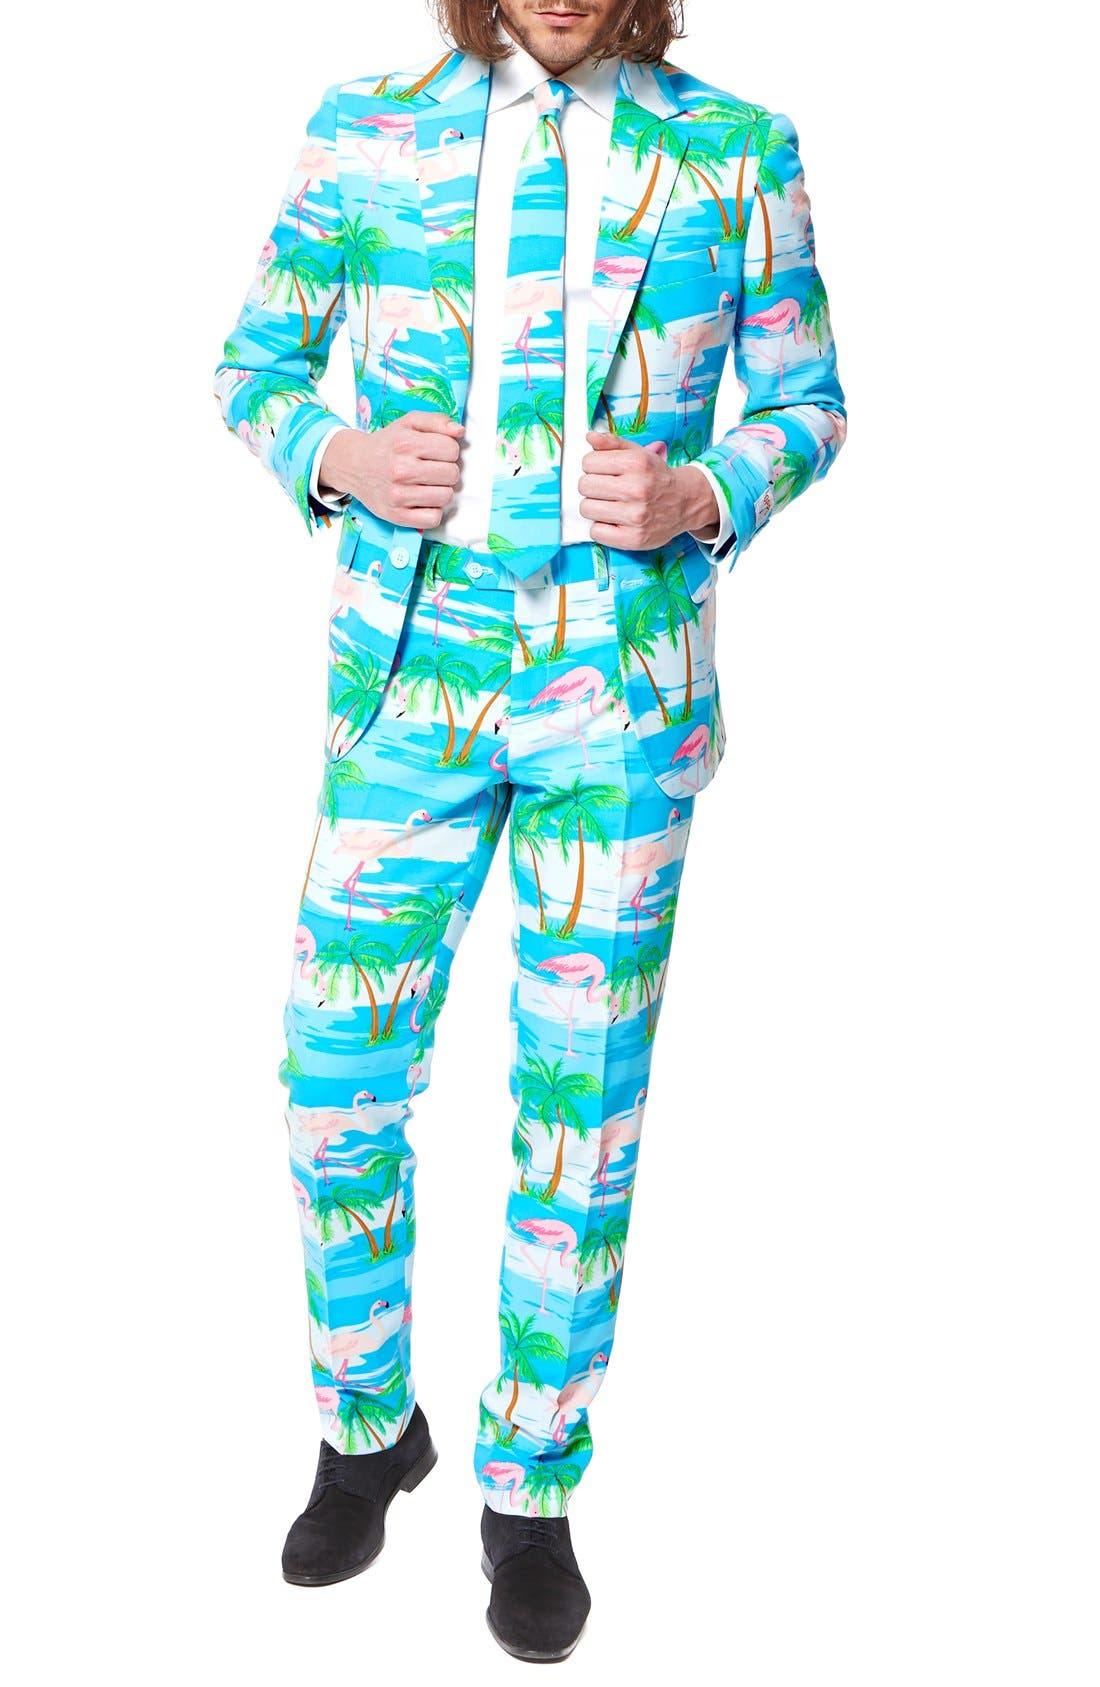 Main Image - OppoSuits 'Flaminguy' Trim Fit Two-Piece Suit with Tie